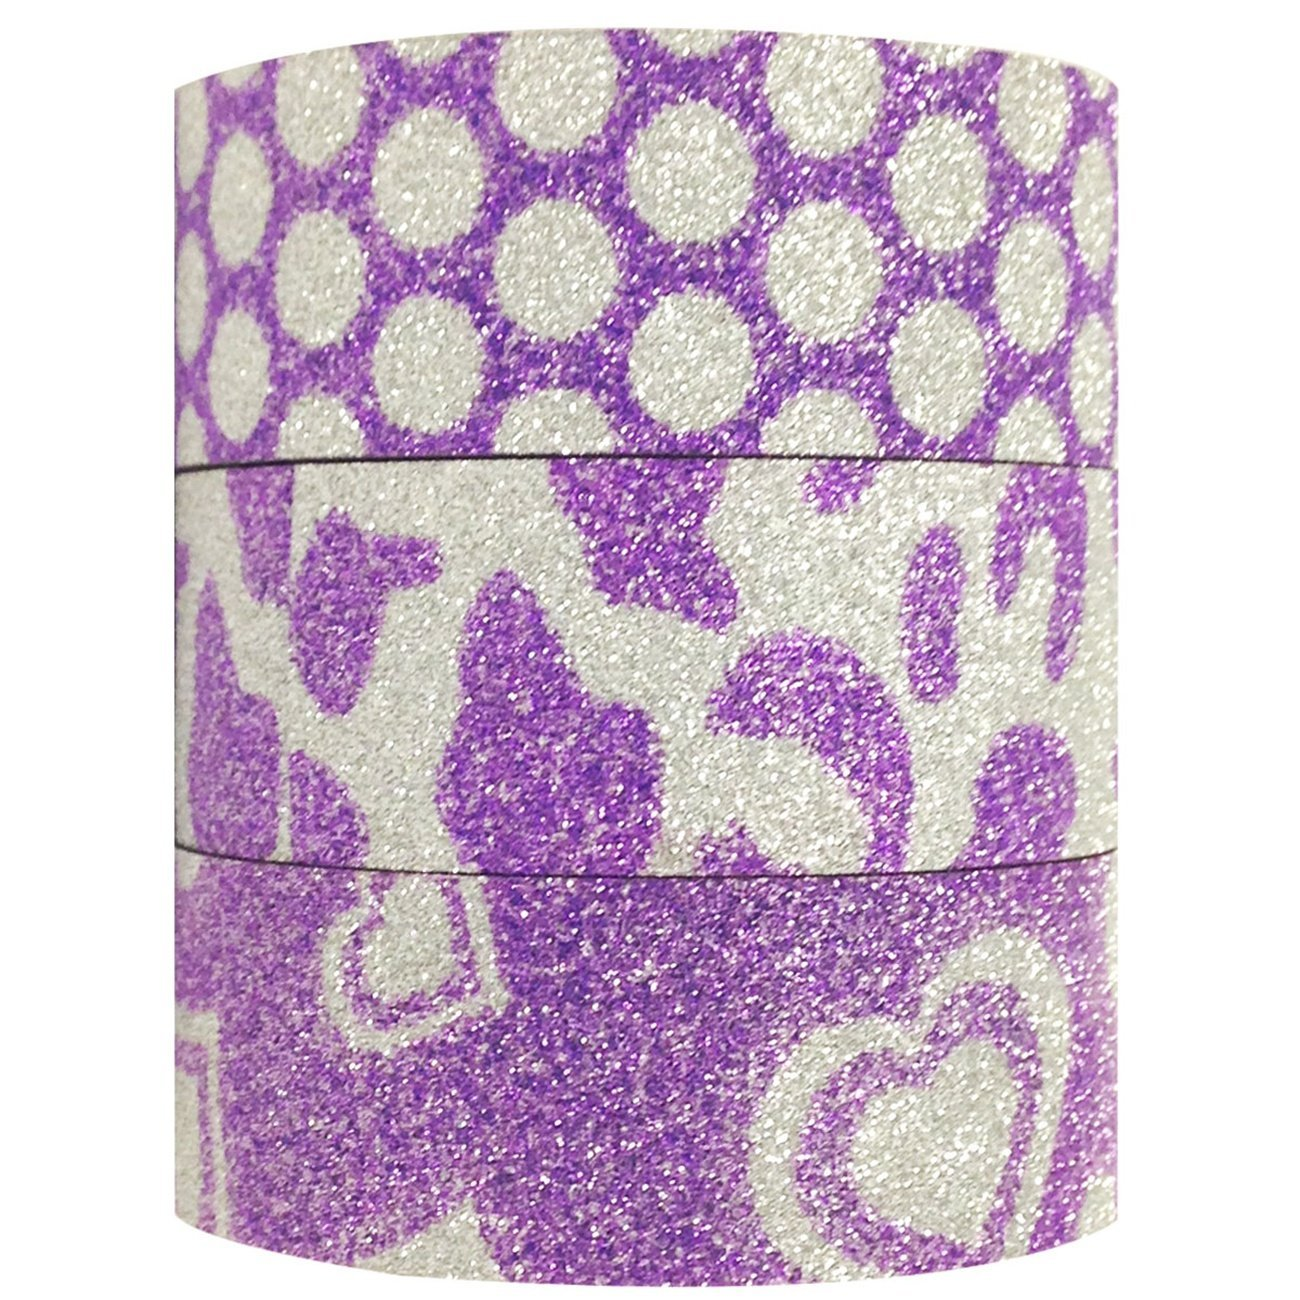 Wrapables Purple Power Japanese Washi Masking Tape (set of 3)